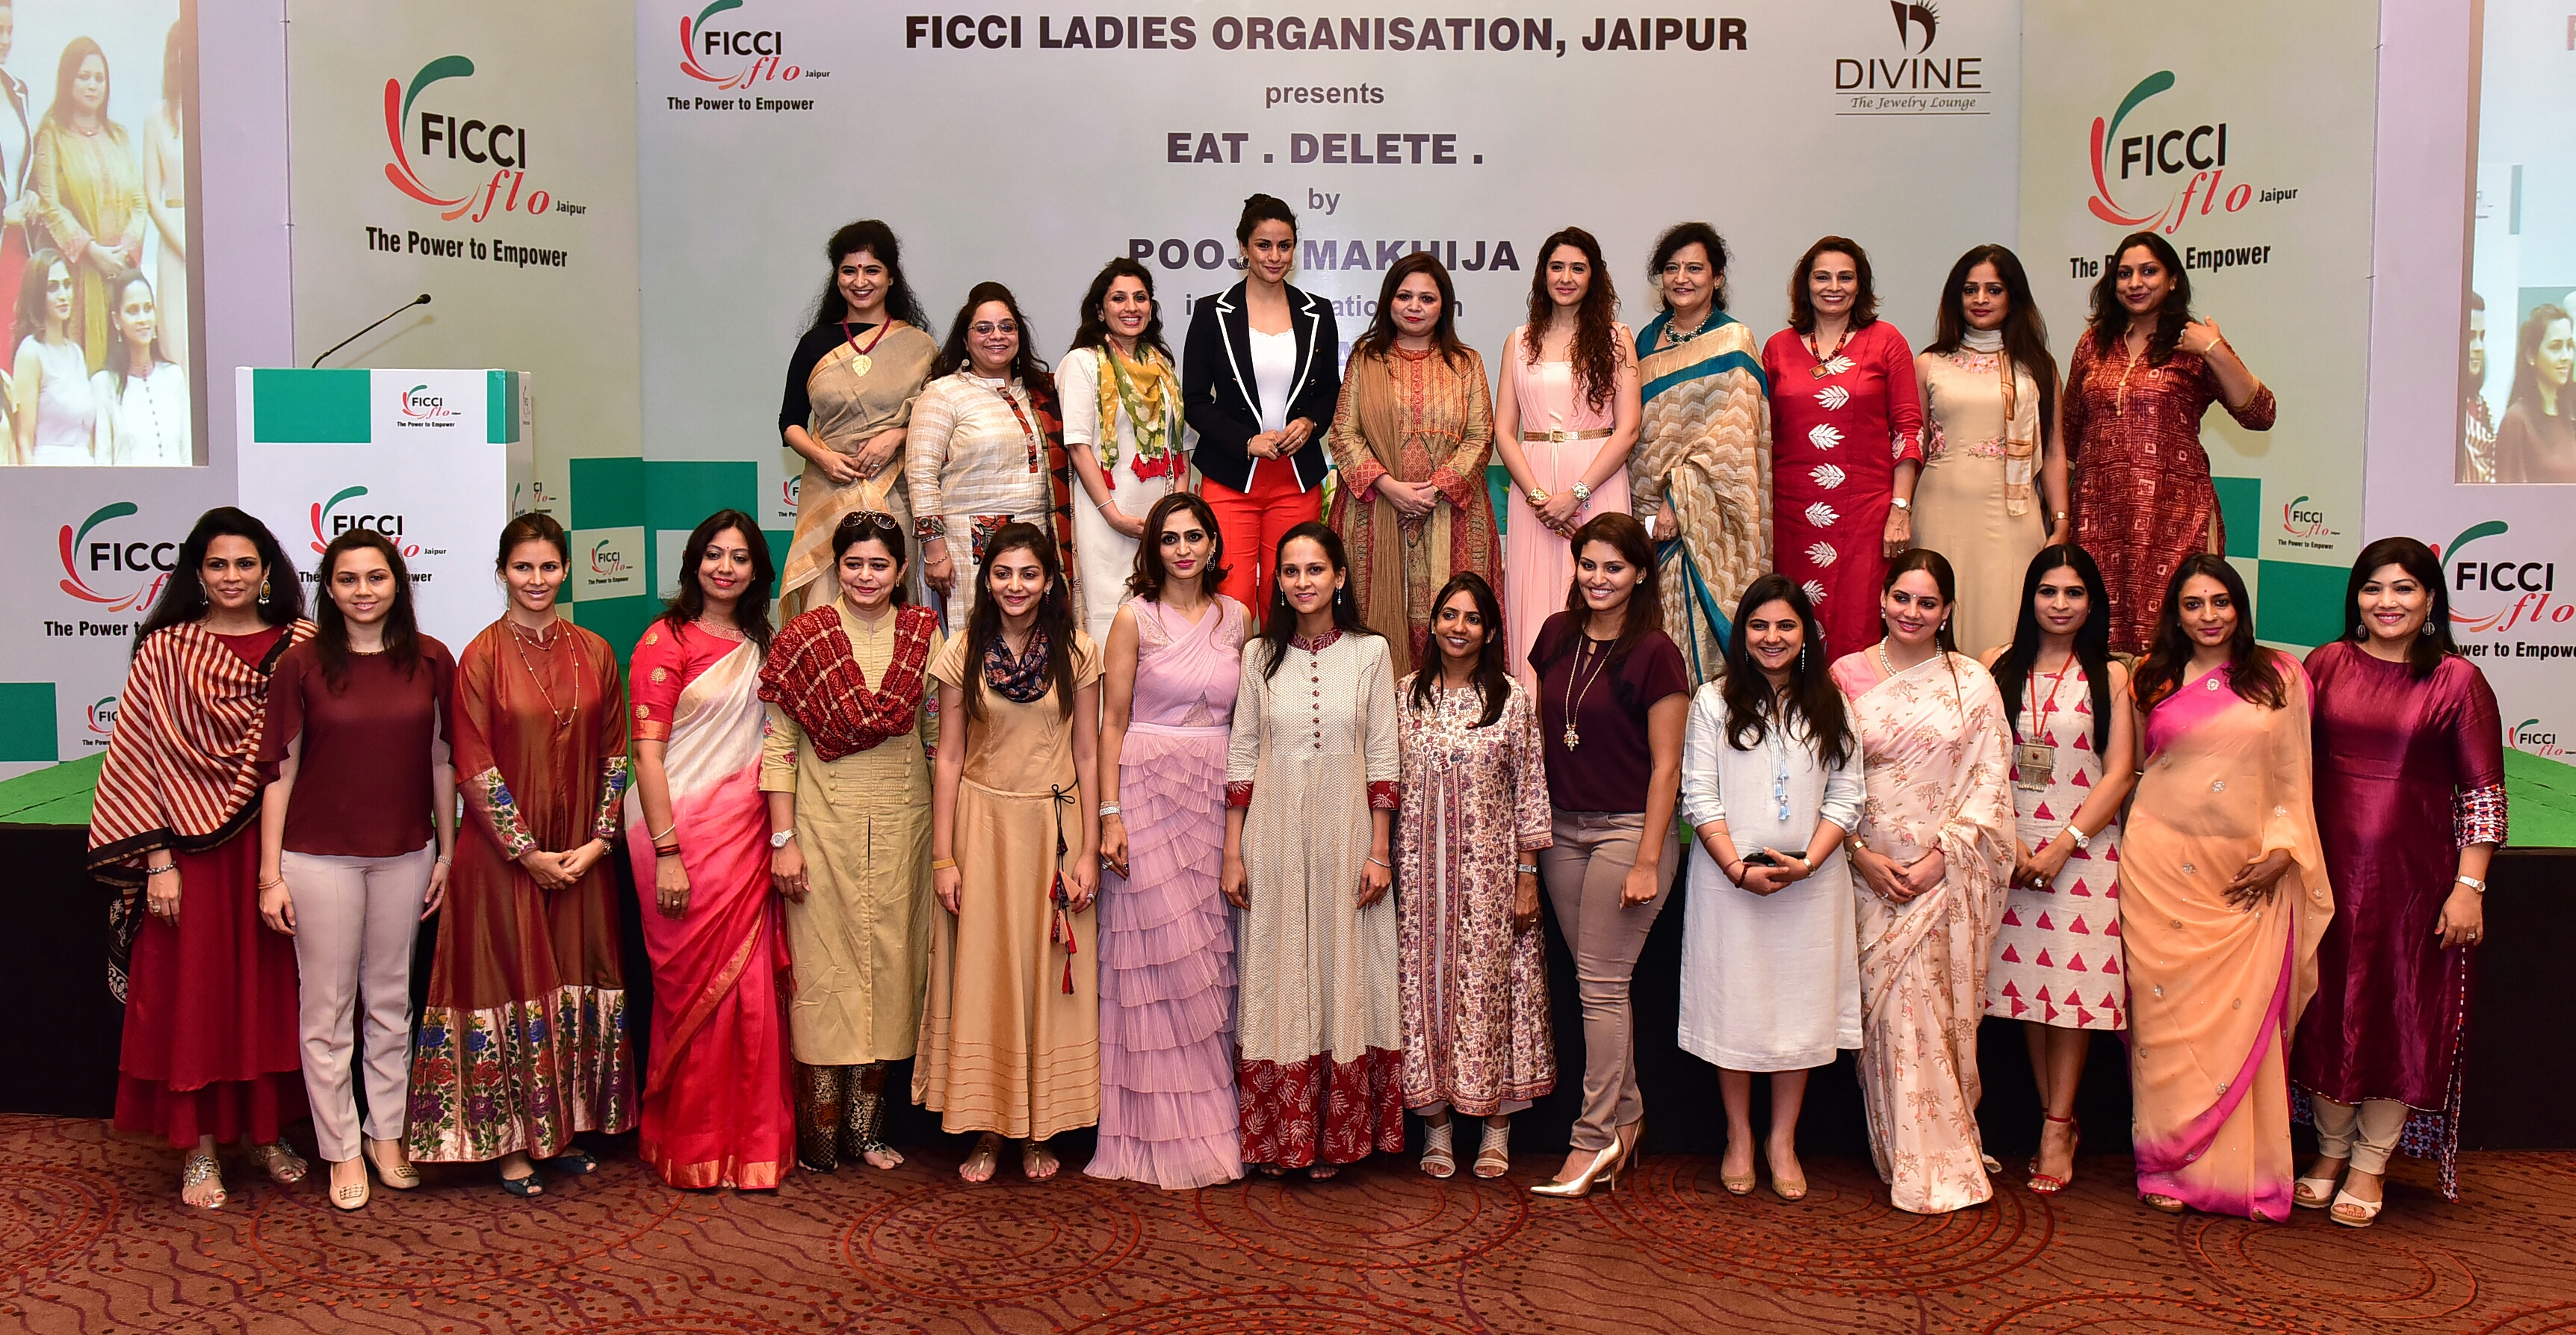 Jaipur FICCI FLO ladies learn how to Eat & Delete by actress Gul Panag and nutritionist Pooja Makhija